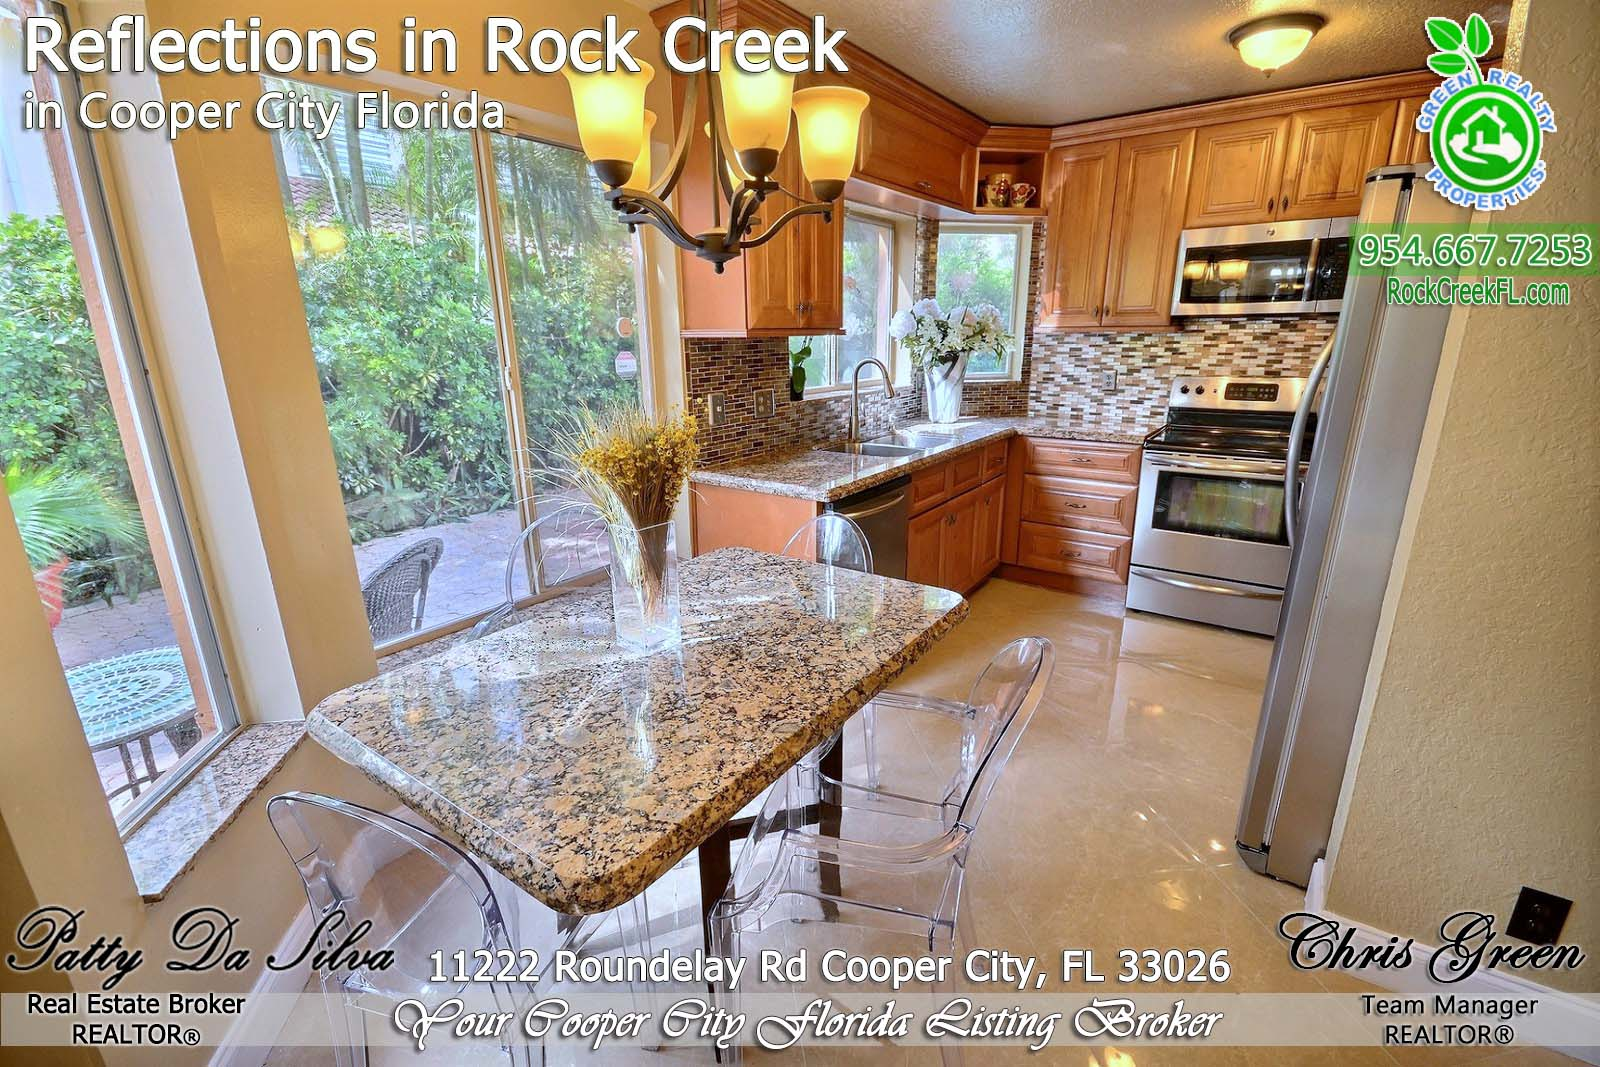 Cooper City Real Estate Brokers